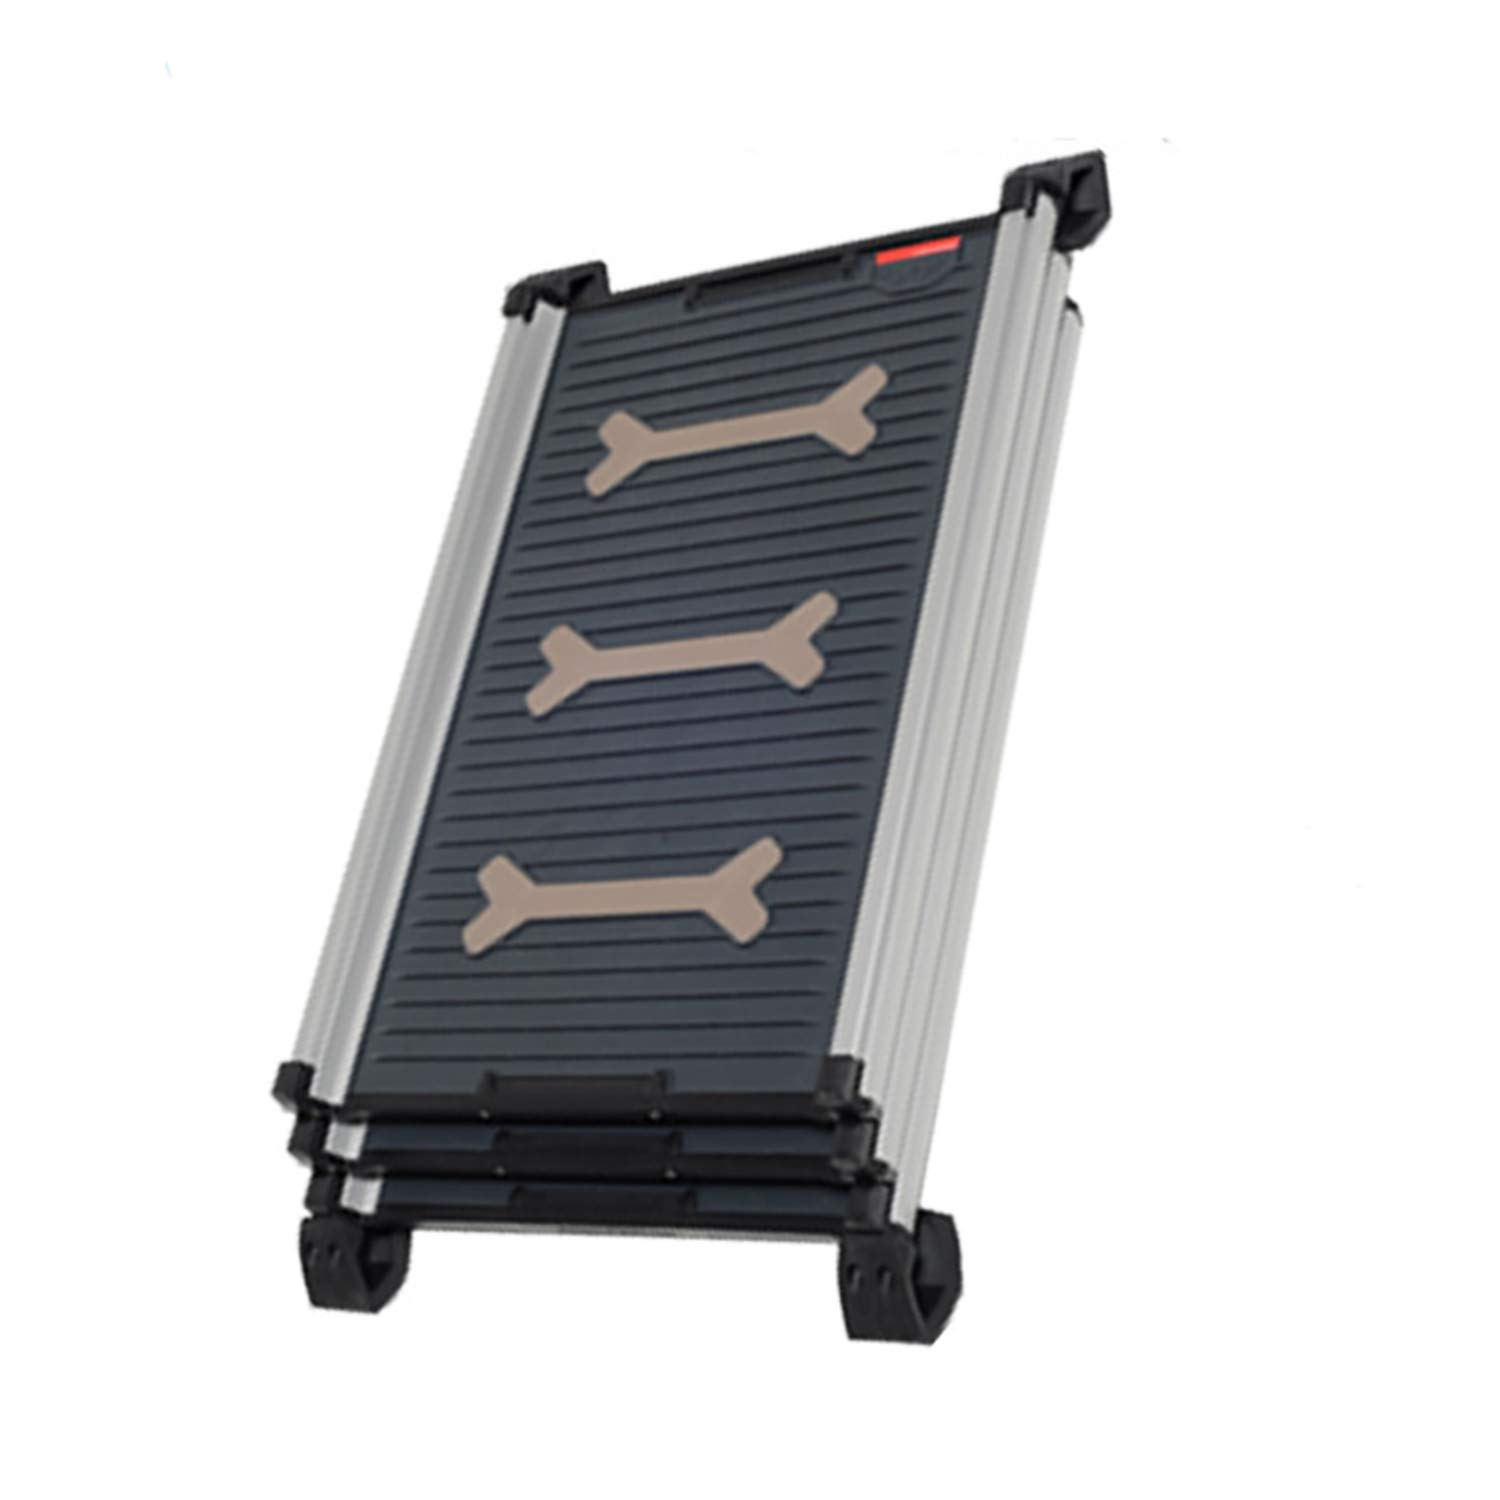 High Tech Pet Telescopic Step Ladder Anti Skid Ladder Ladder 4Pets Car Pet Cage Telescopic Step Ladder,Color as Shown,16042.5c by Yeaha pet-stairs-and-steps